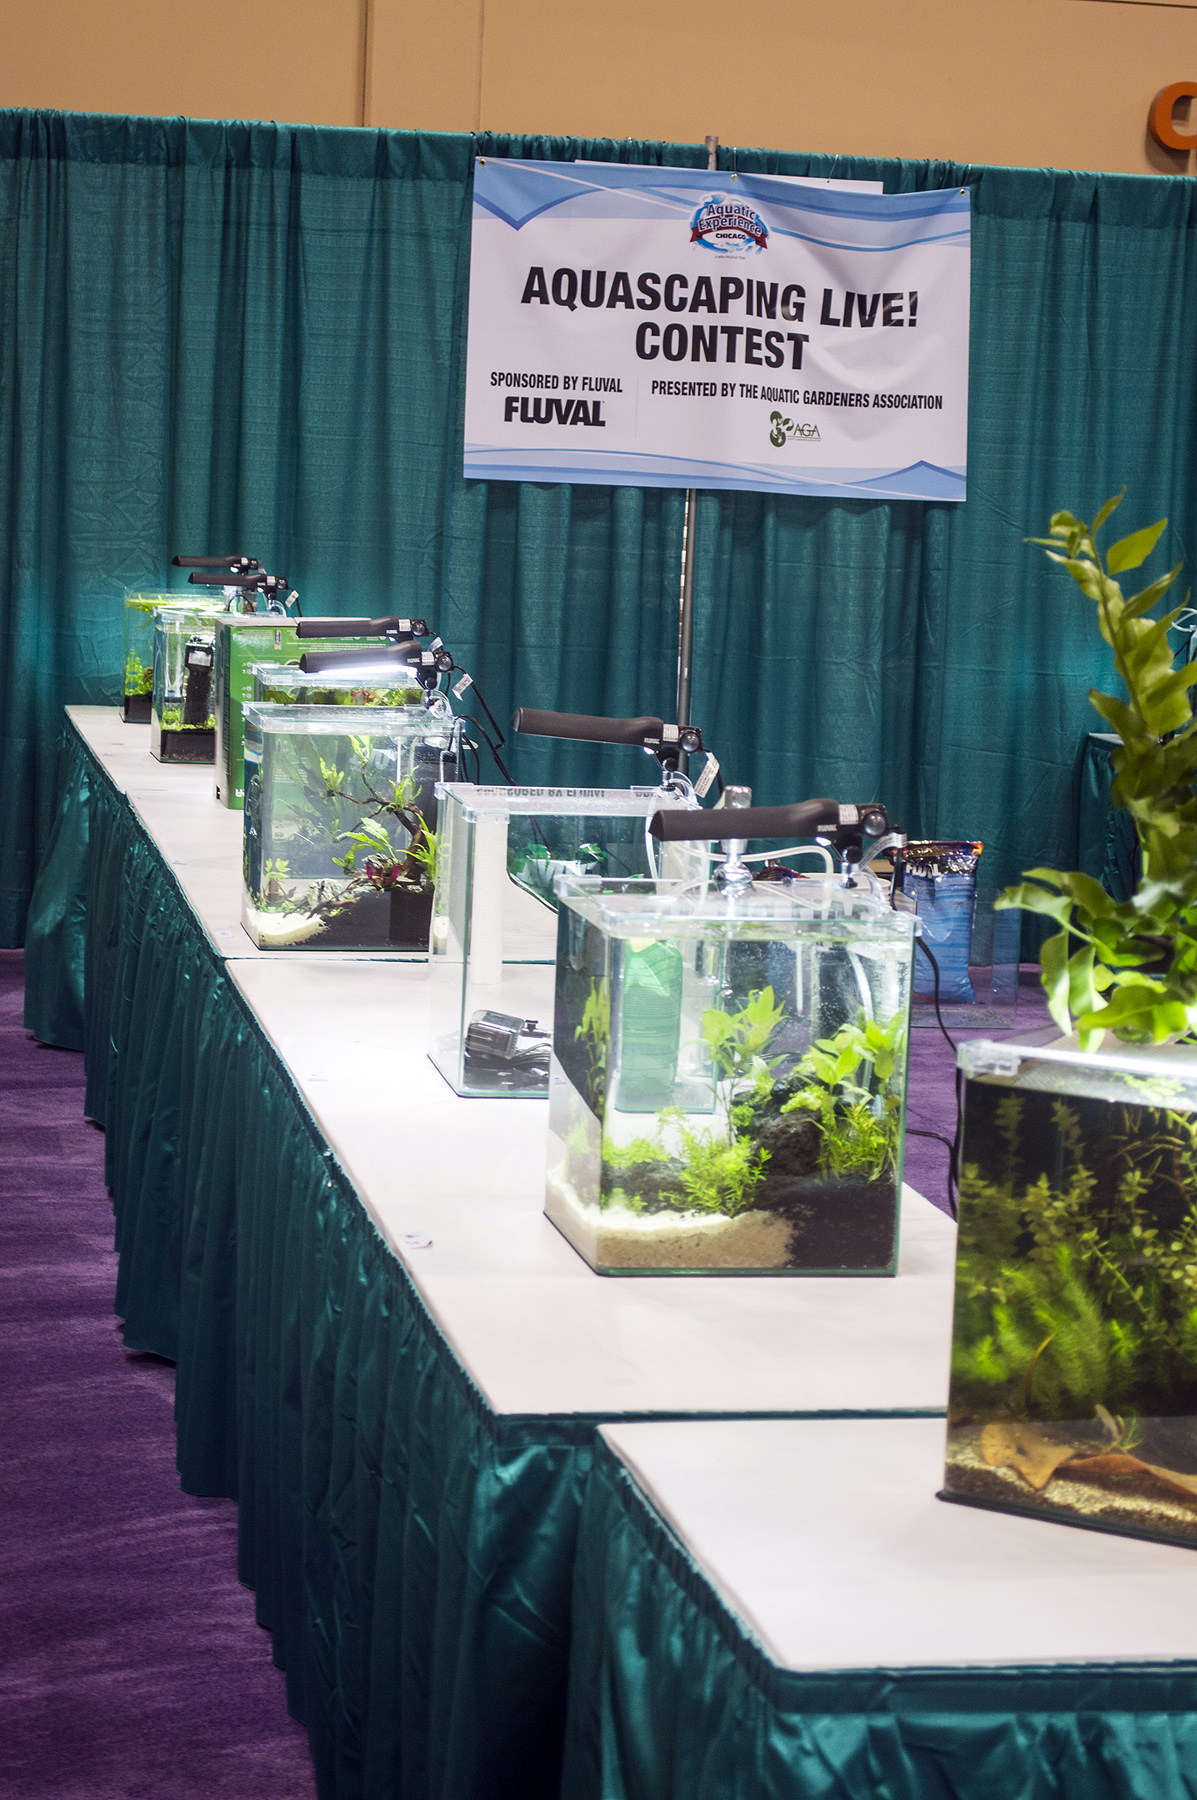 Final Entries For The Aquascaping Live! Contest During Aquatic Experience    Chicago 2014. Image